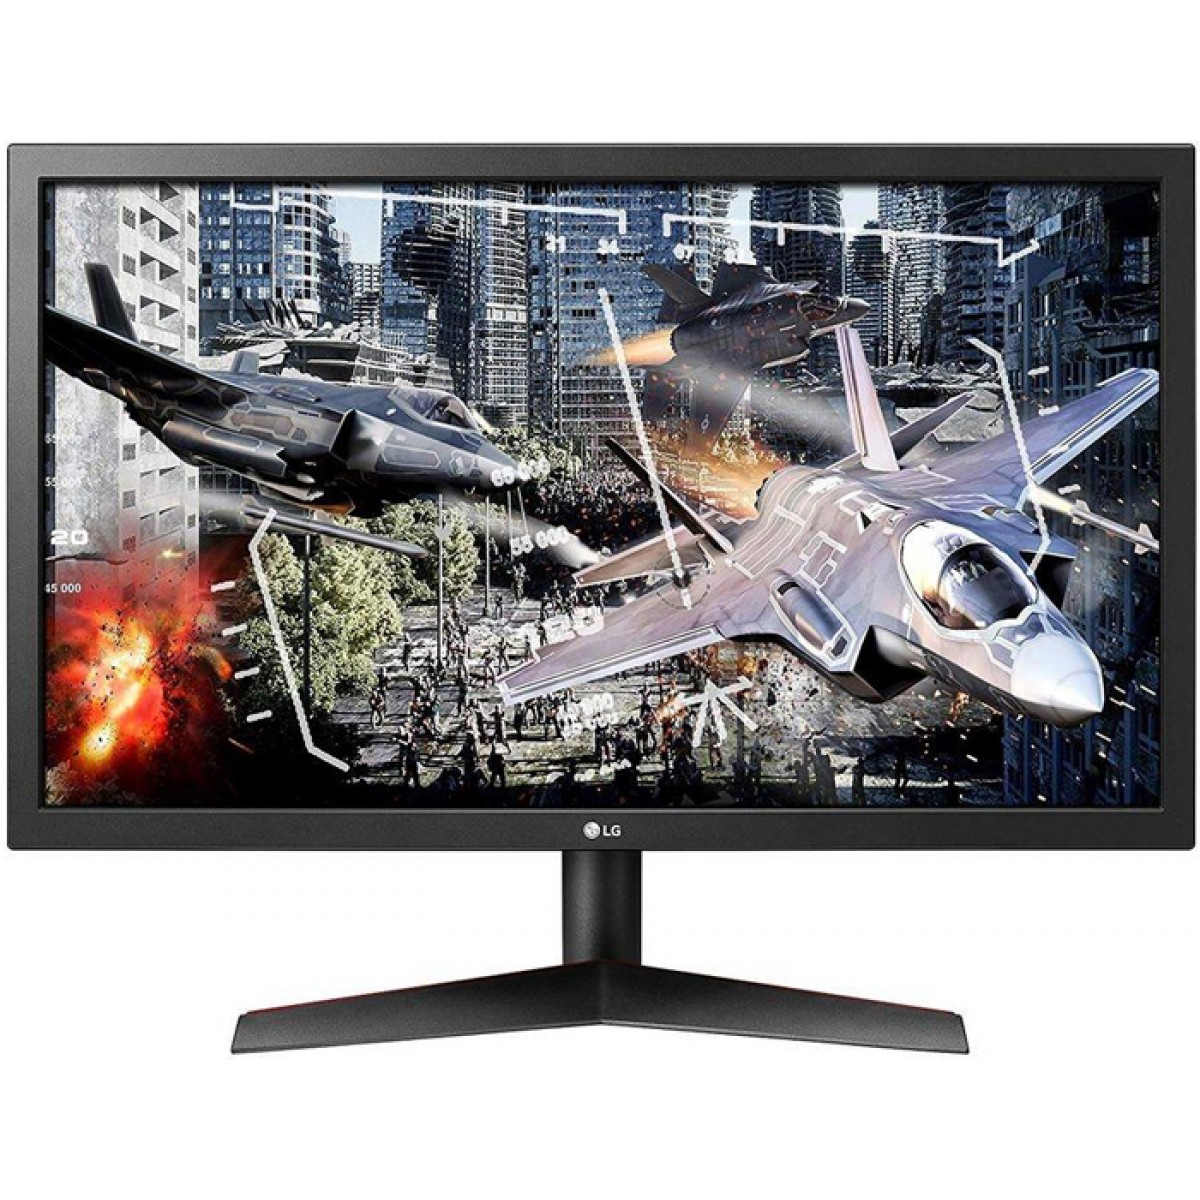 Monitor Gamer LG 24 Pol, Full HD, 144hz, 1ms, FreeSync, 24GL600F-B